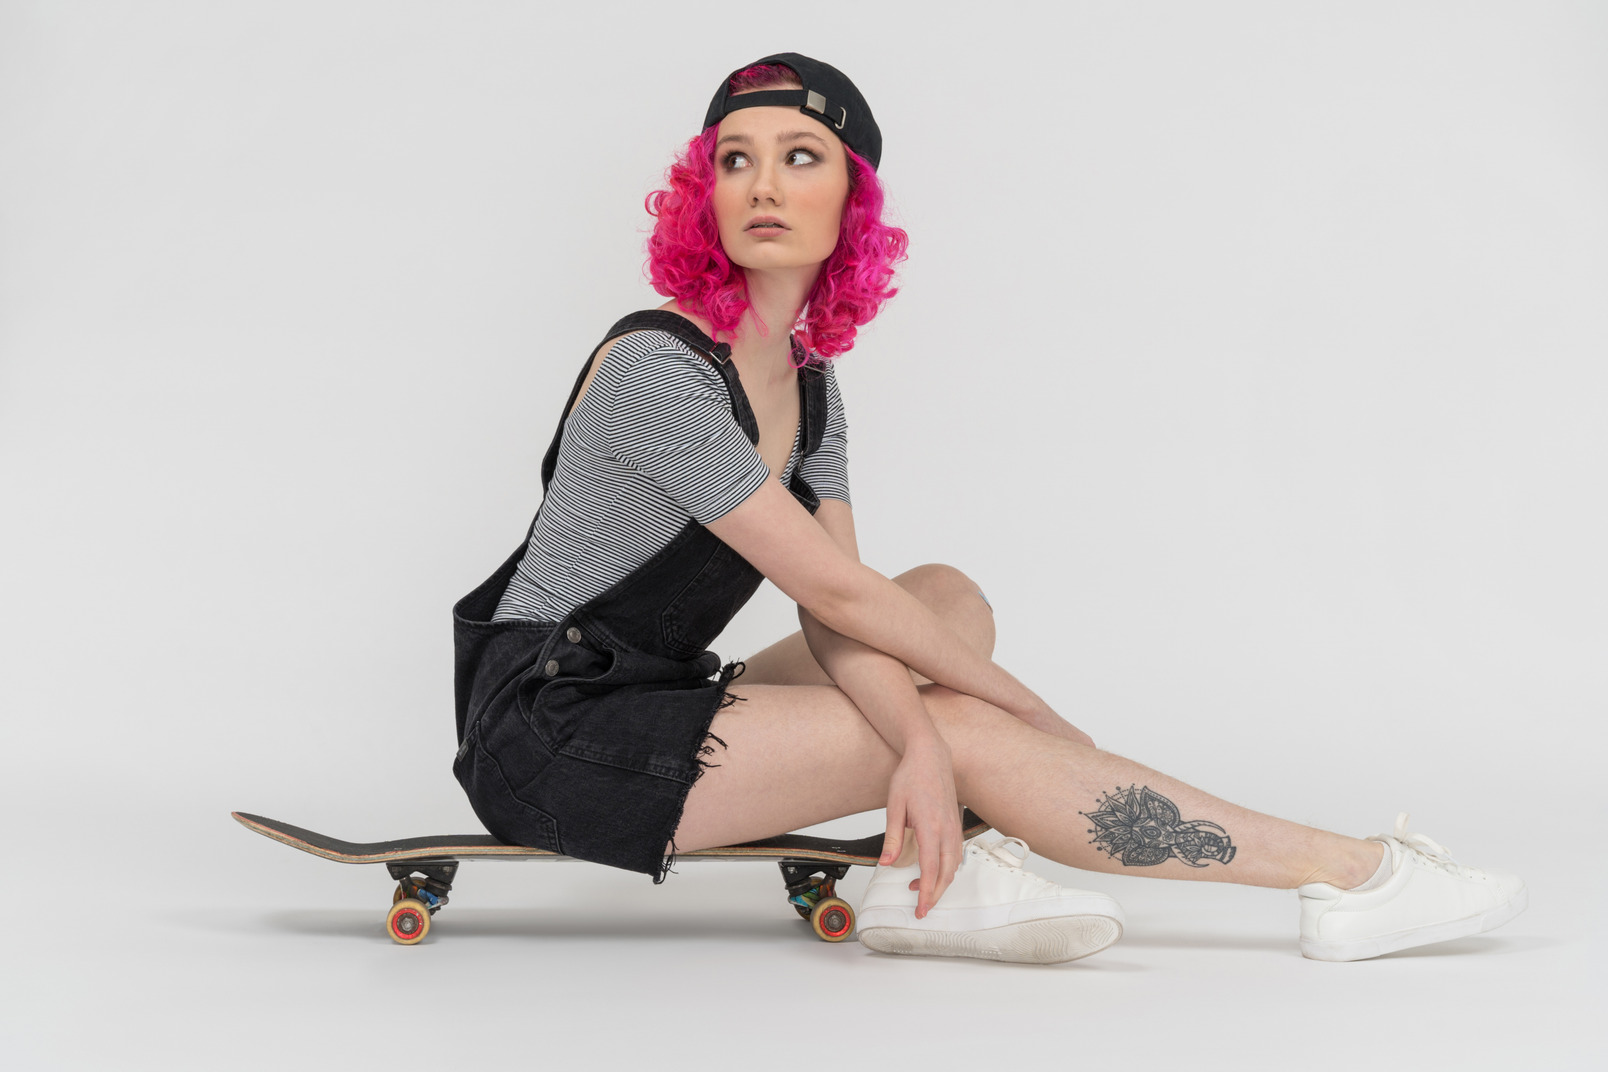 A pink haired girl sitting on a skateboard